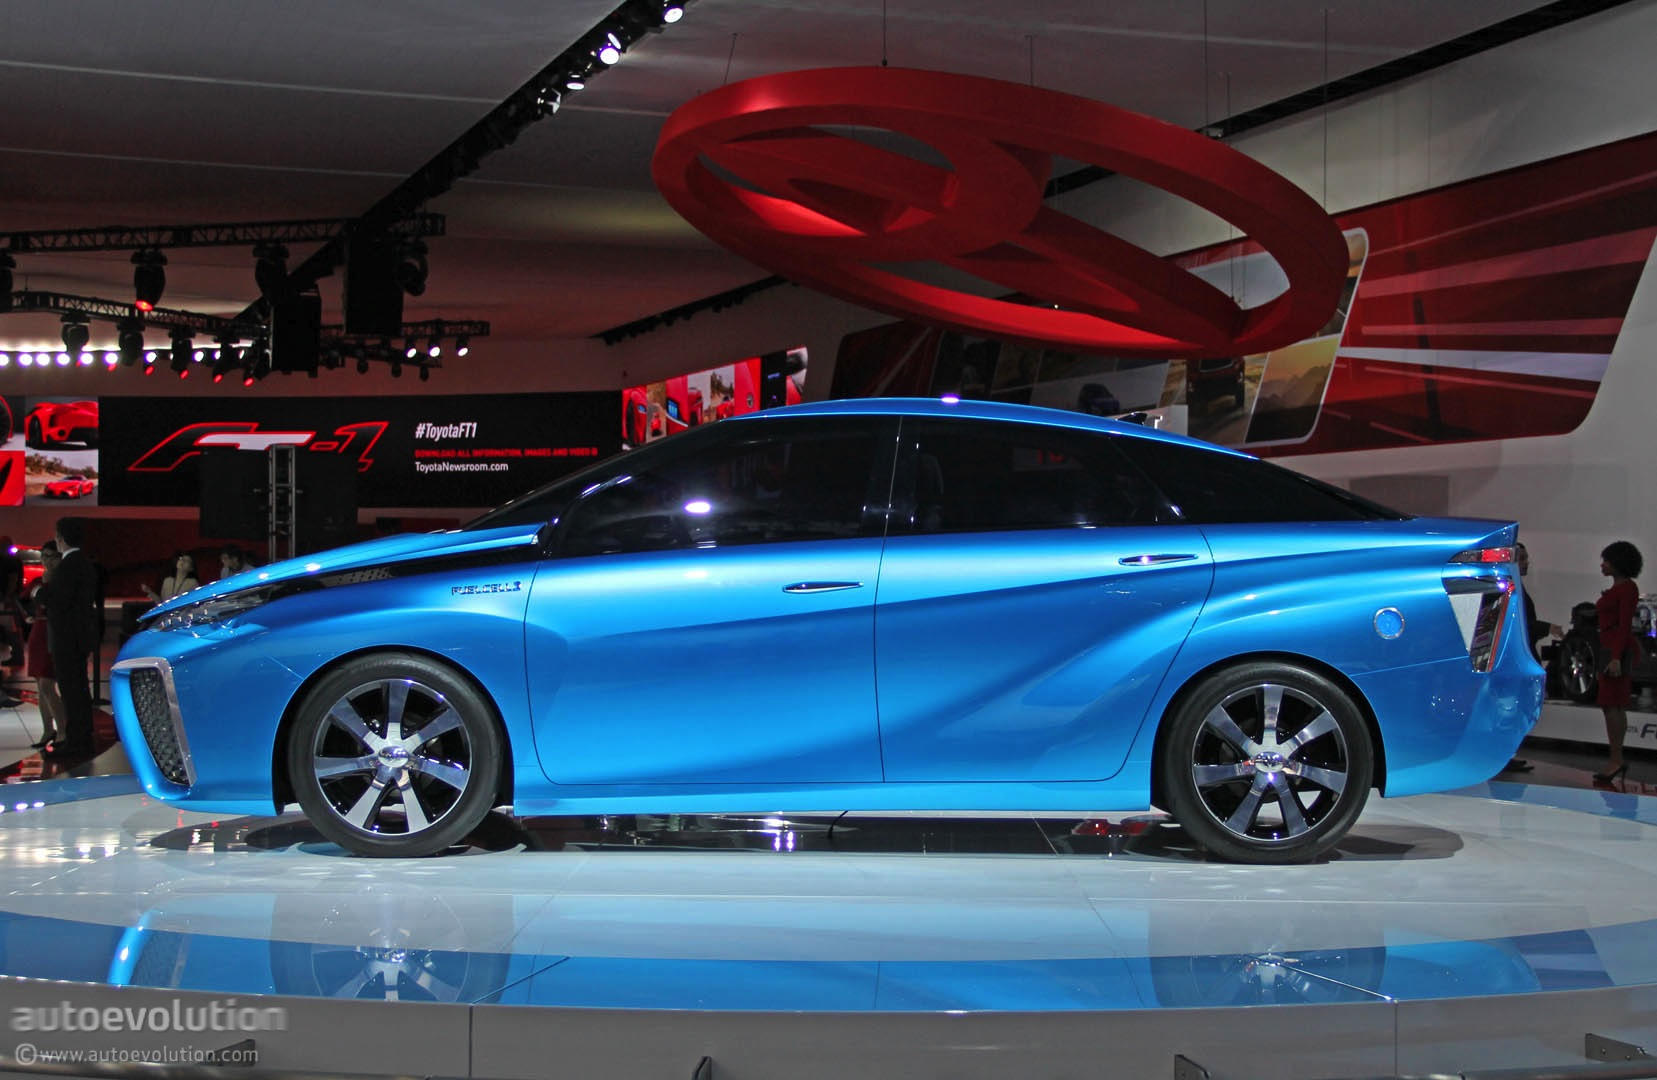 2014 Toyota Fcv Concept Blue Is The New Green In Detroit